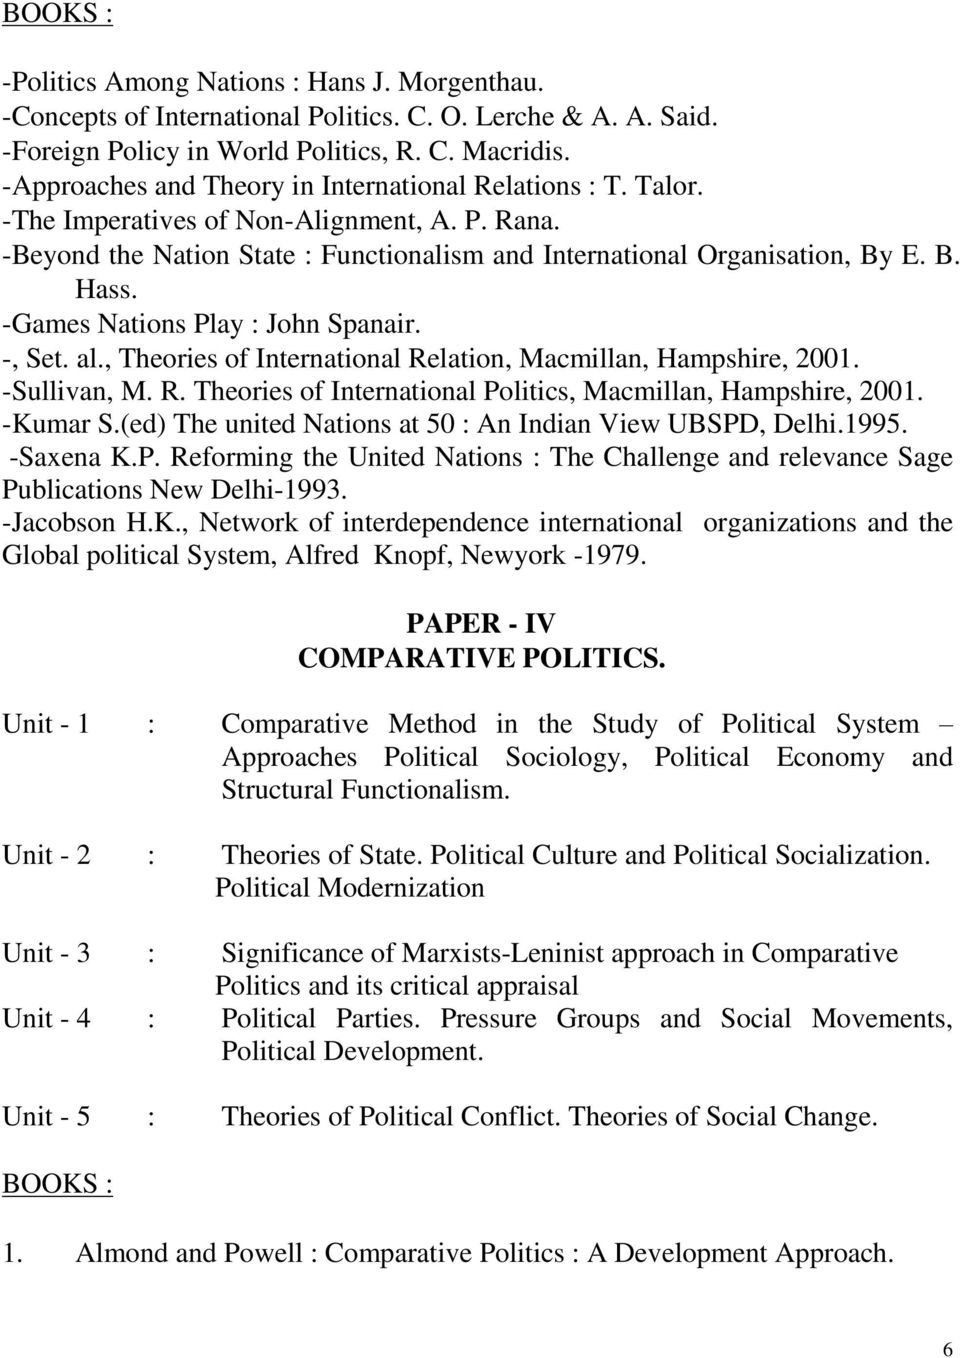 -Games Nations Play : John Spanair. -, Set. al., Theories of International Relation, Macmillan, Hampshire, 2001. -Sullivan, M. R. Theories of International Politics, Macmillan, Hampshire, 2001.